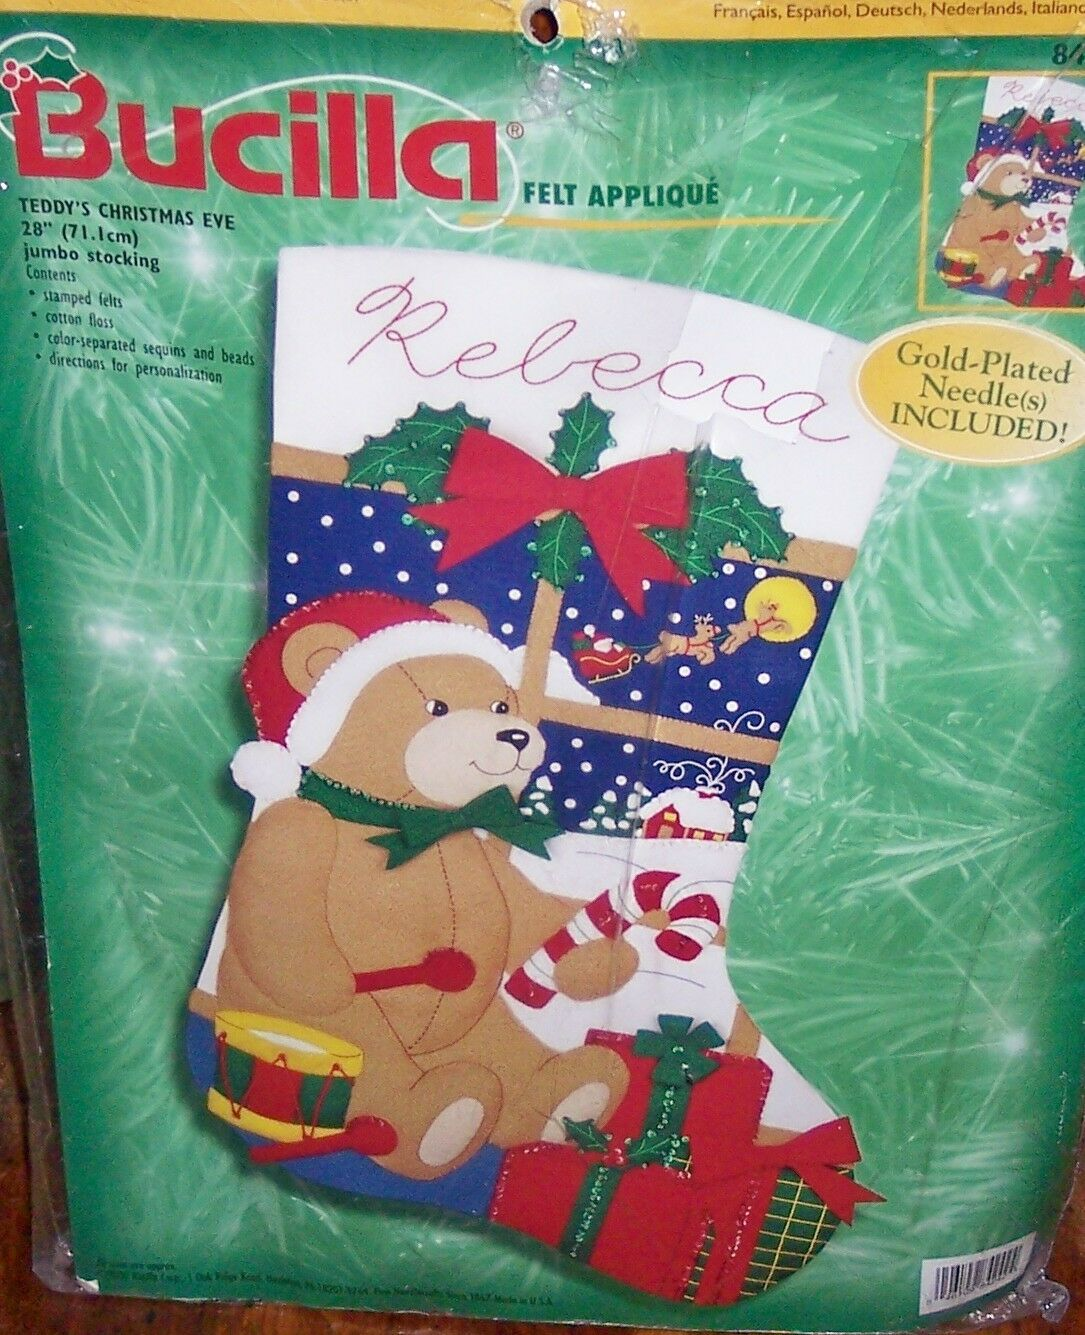 Bucilla Jumbo Stocking Felt Applique Holiday Kit Teddy\'s Christmas ...